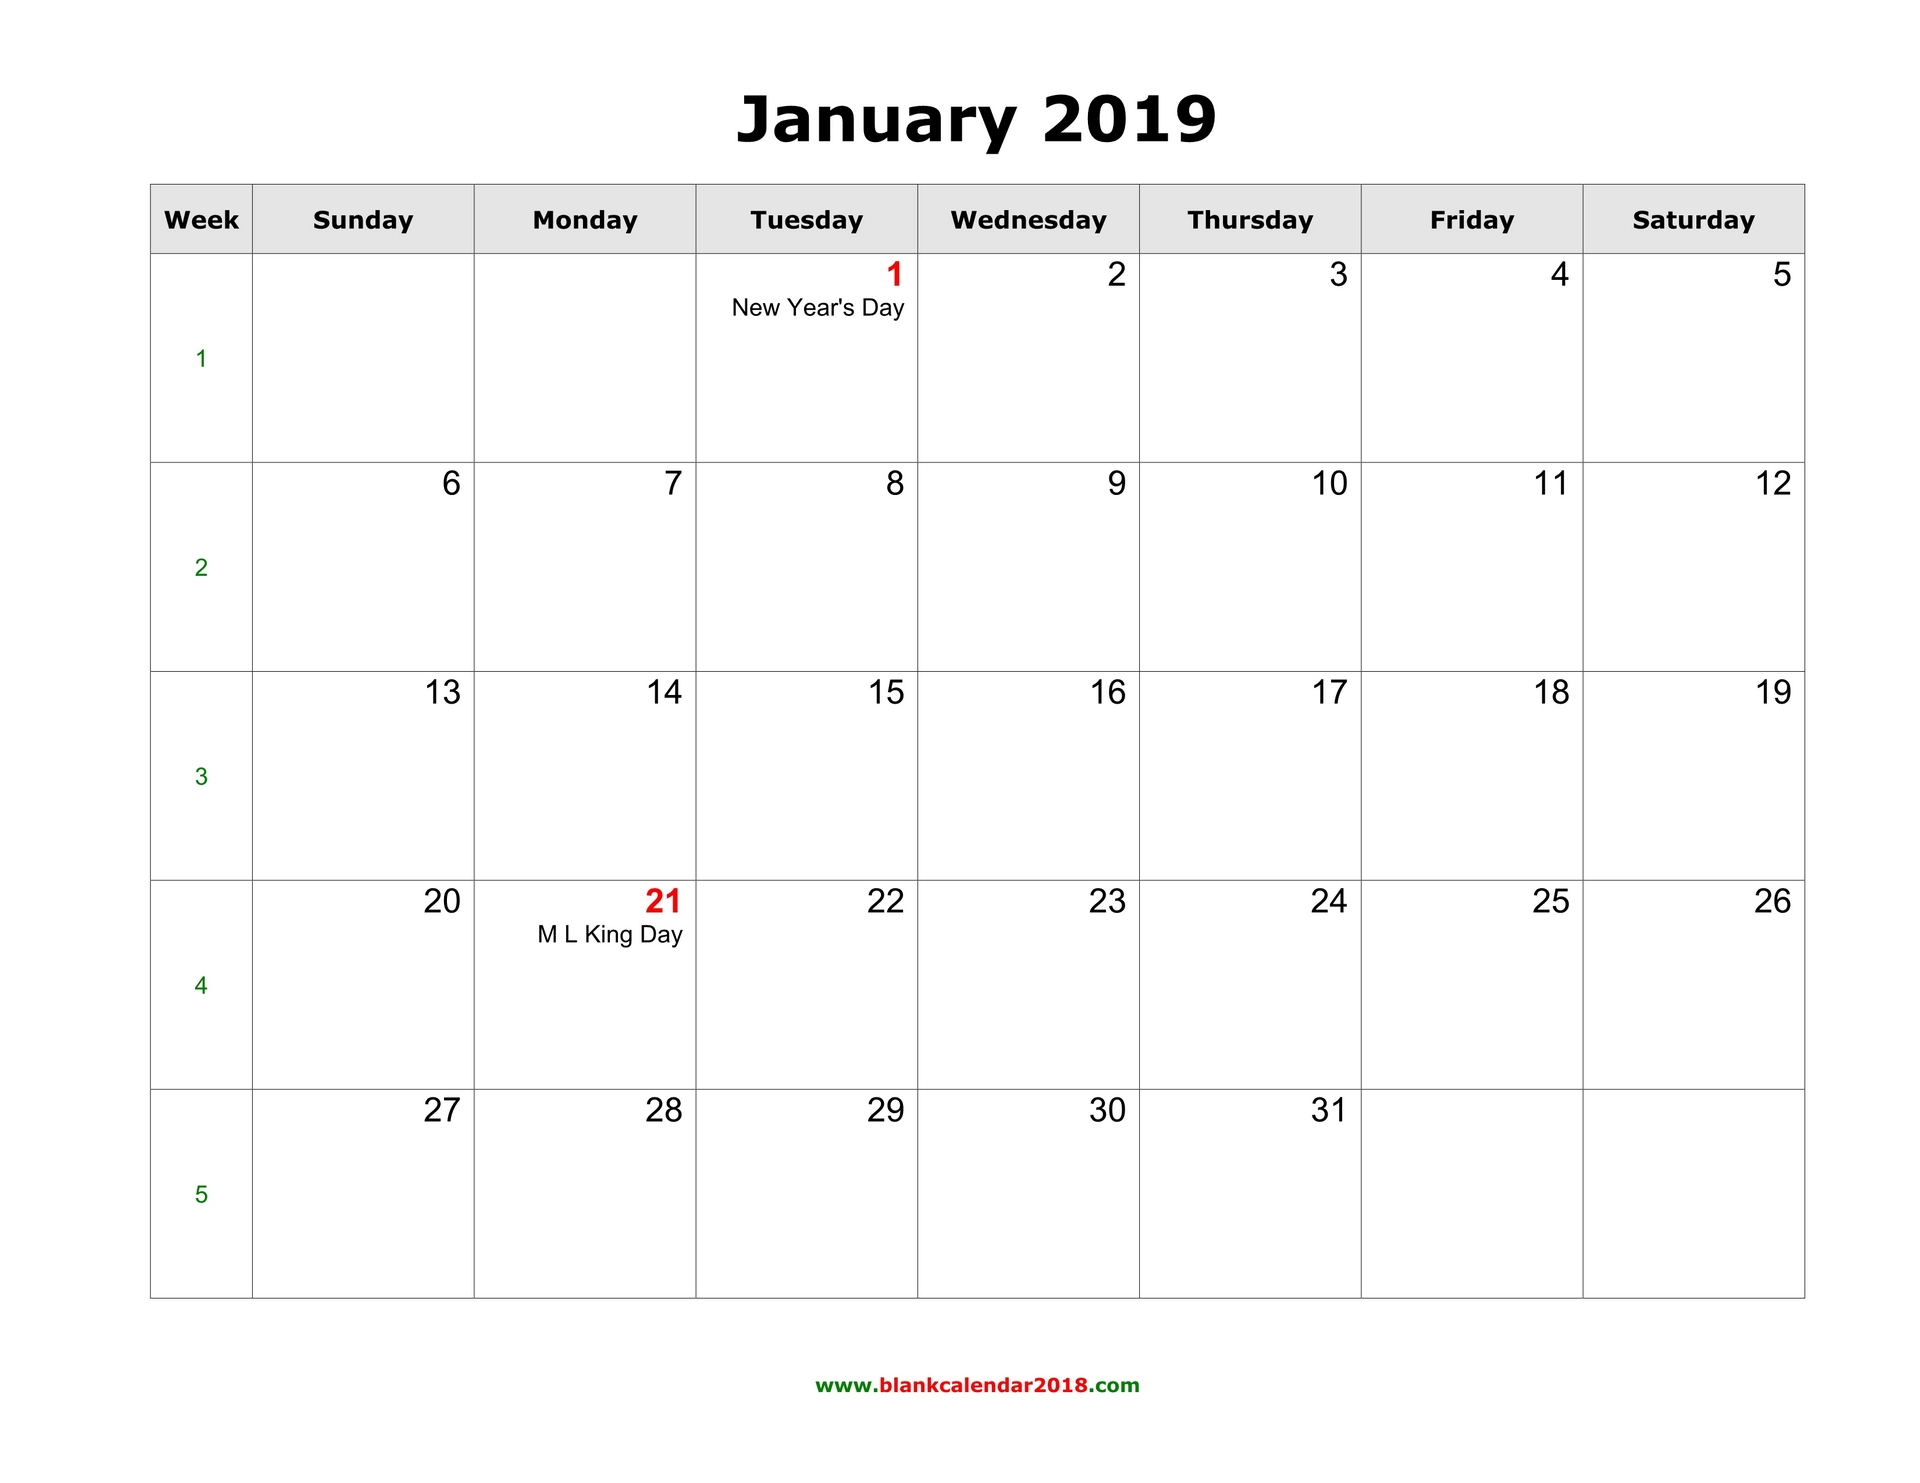 January Calendar 2019 Template Blank Calendar for January 2019